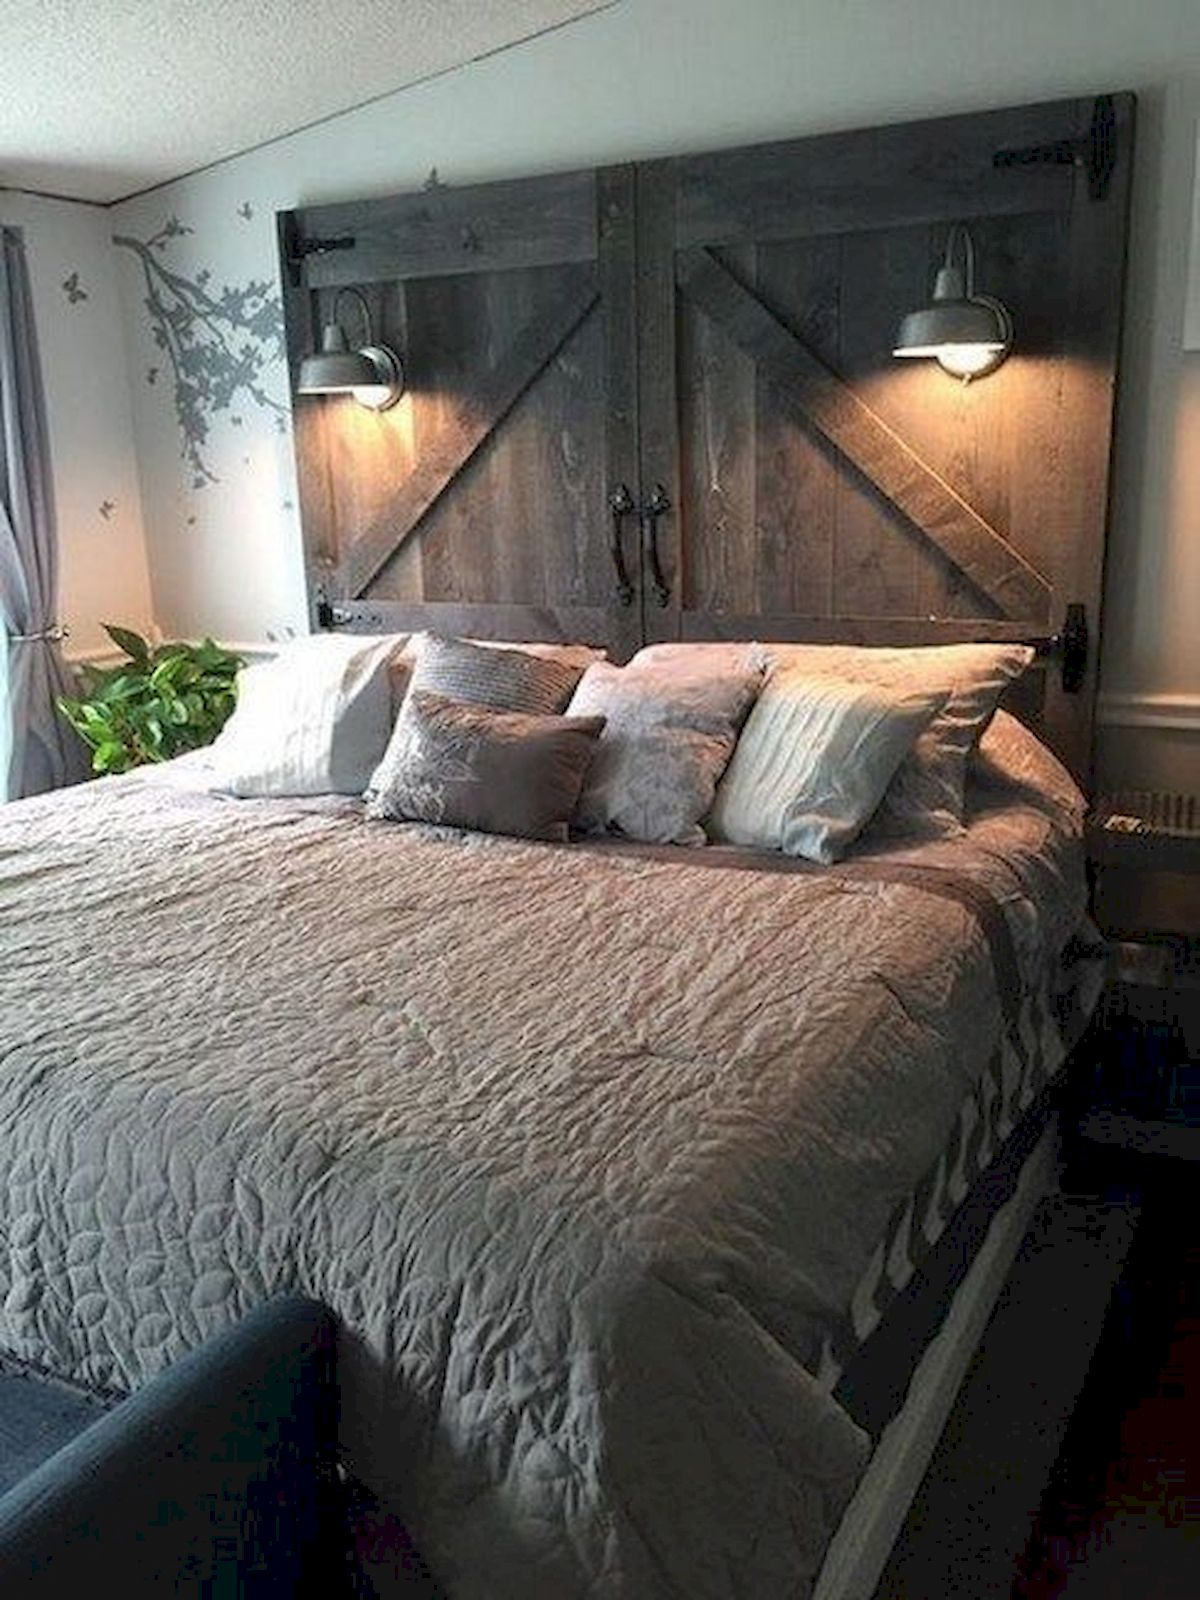 Inexpensive diy bedroom decorating ideas on a budget 47. 53 Farmhouse Wall Decor Ideas for bedroom (39) - Ideaboz